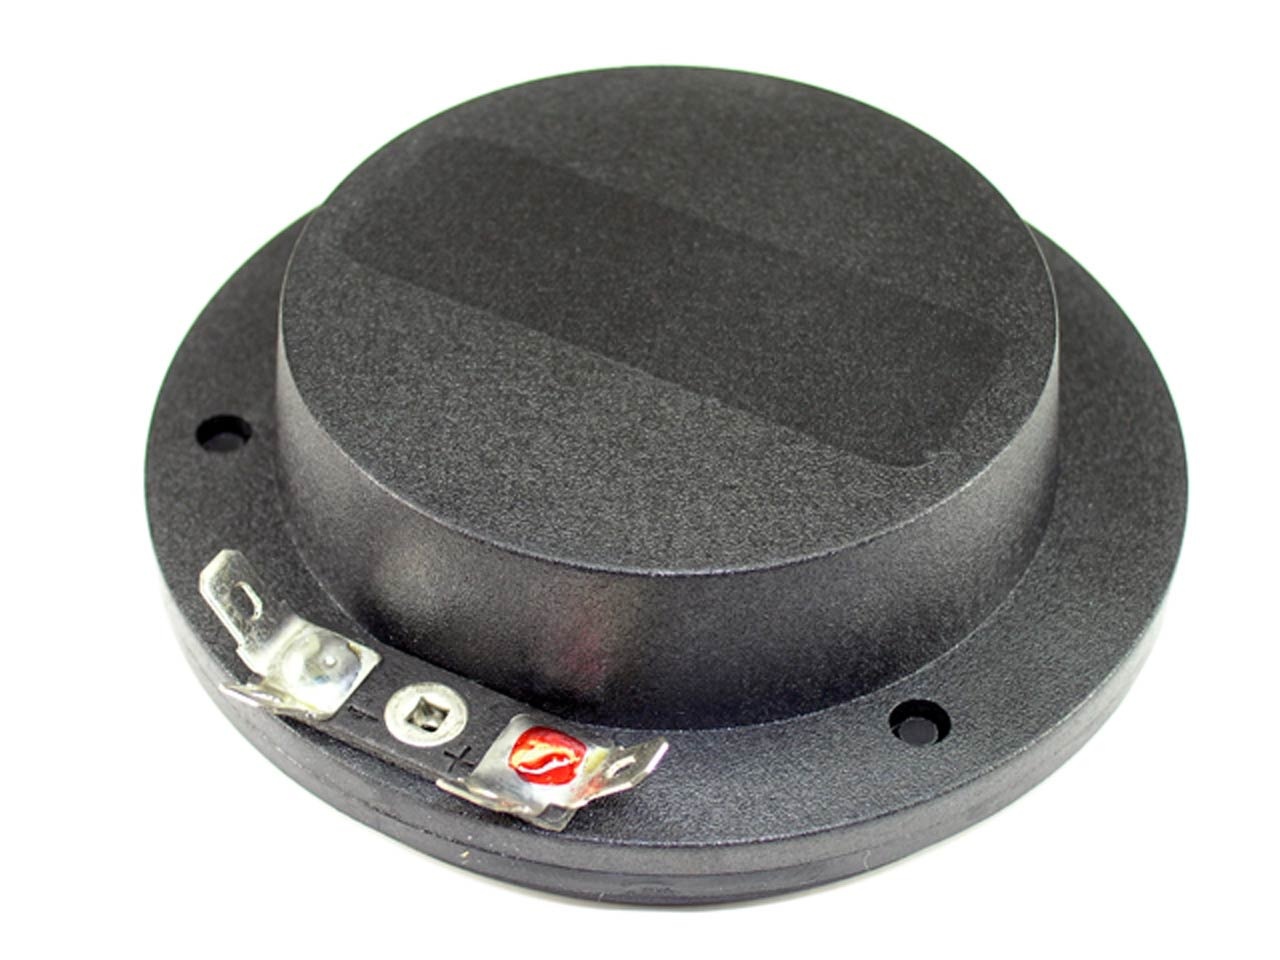 SS Audio Diaphragm for Yamaha JAY-2060, JAY2080 Horn Driver, 8 Ohm, D-101AFT-8